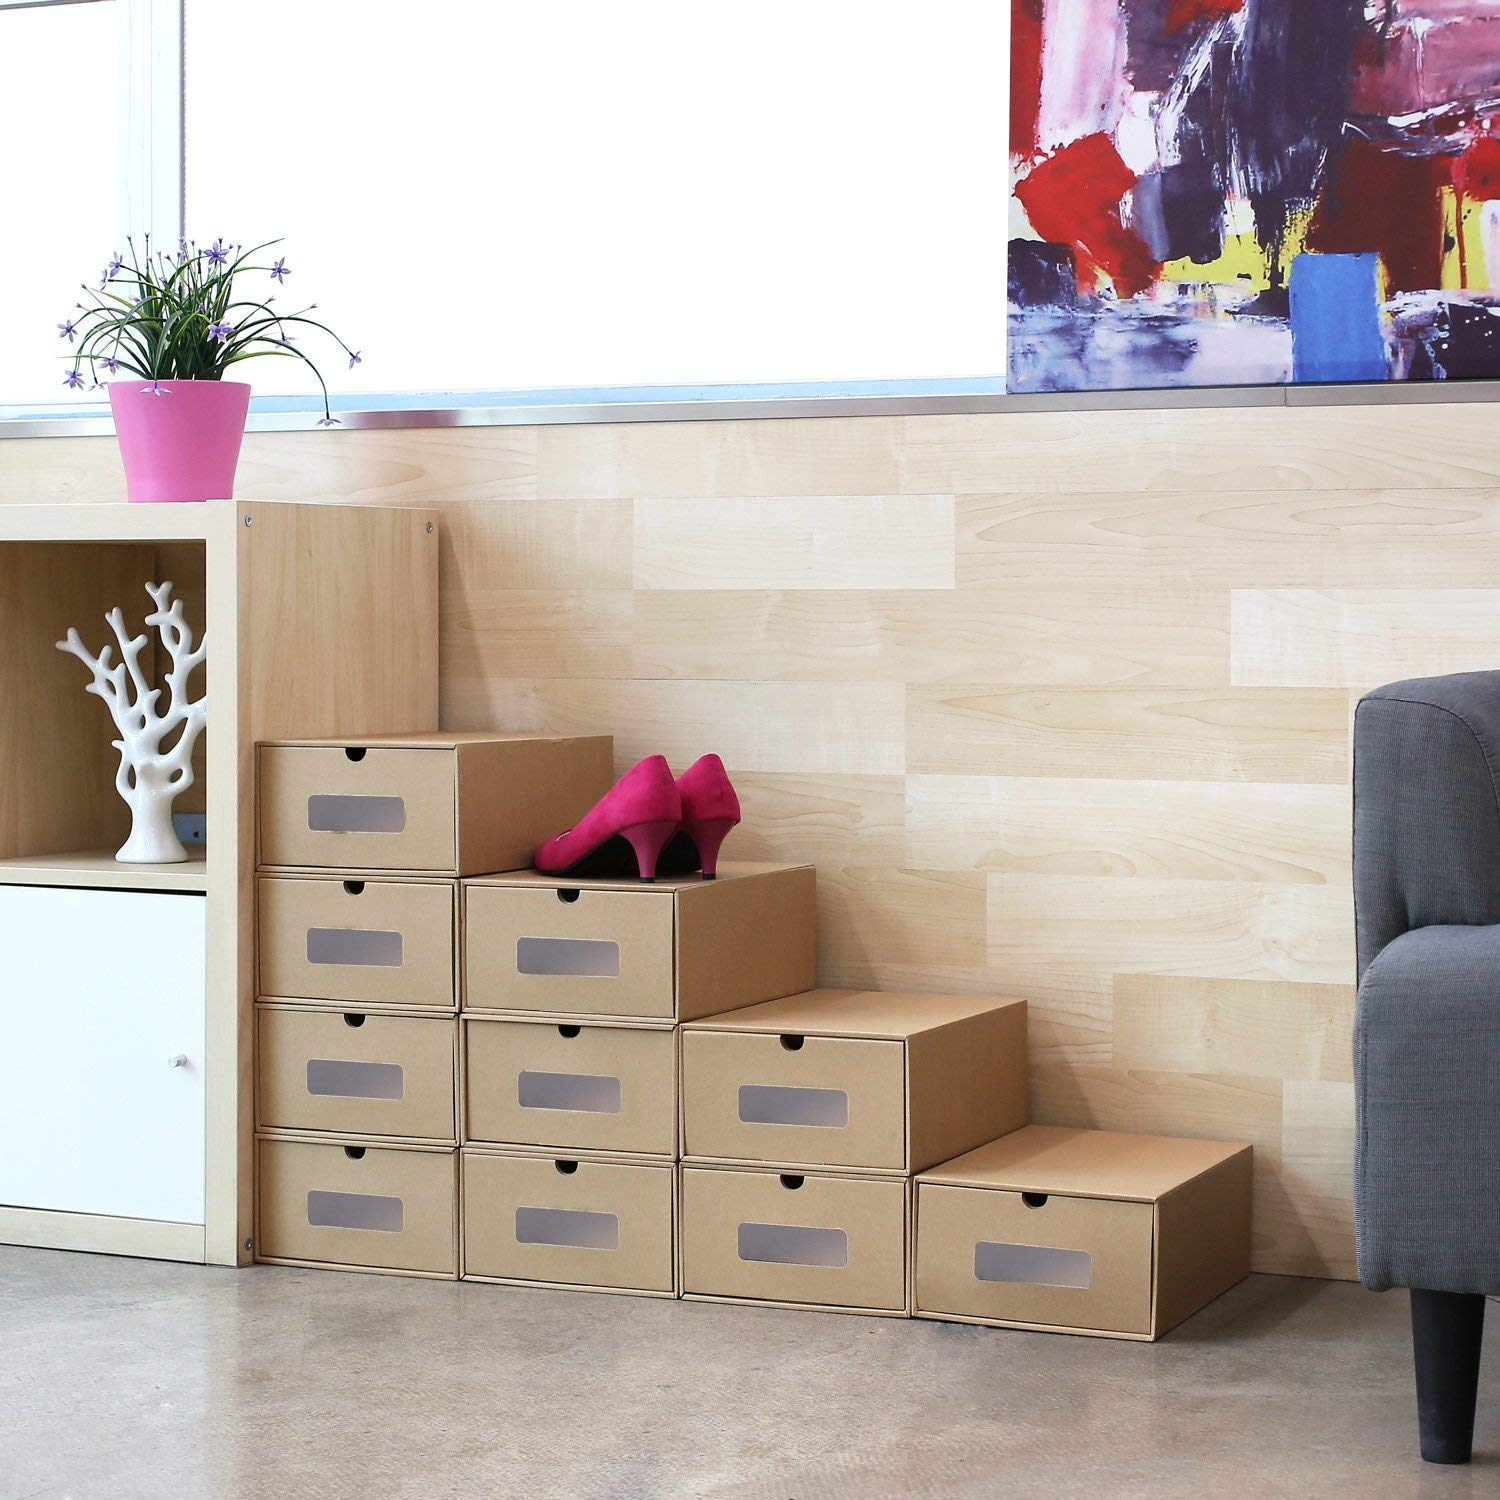 Prasacco Visible Cardboard Shoe Storage Boxes